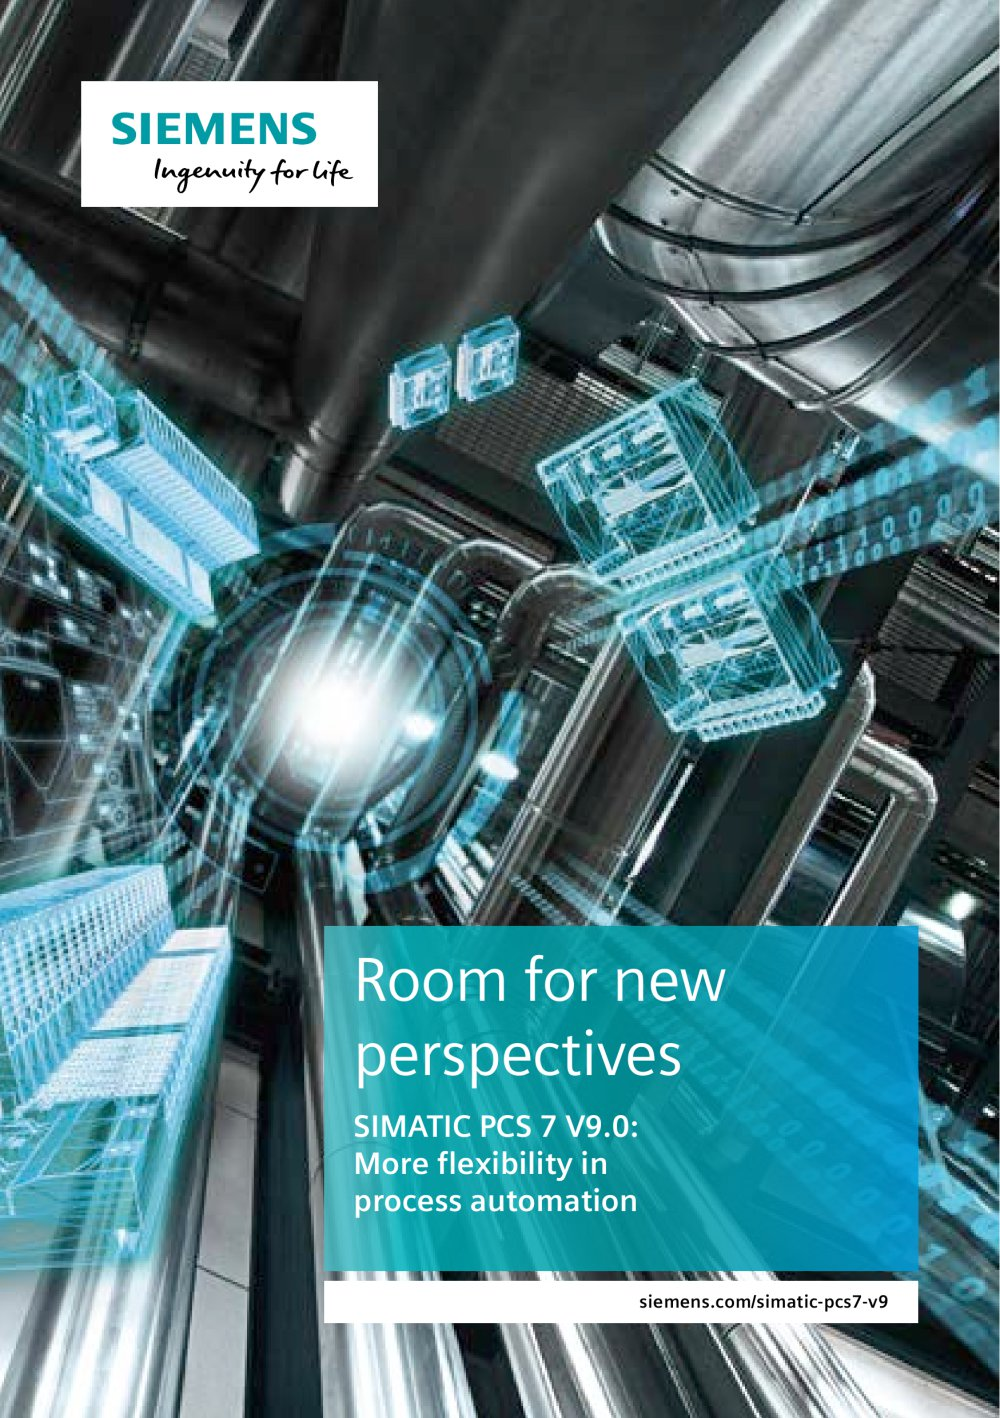 Sitop Library For Simatic Pcs 7 Siemens Power Supplies Pdf Circuitforcircuitconceptspage2jpg 1 2 Pages